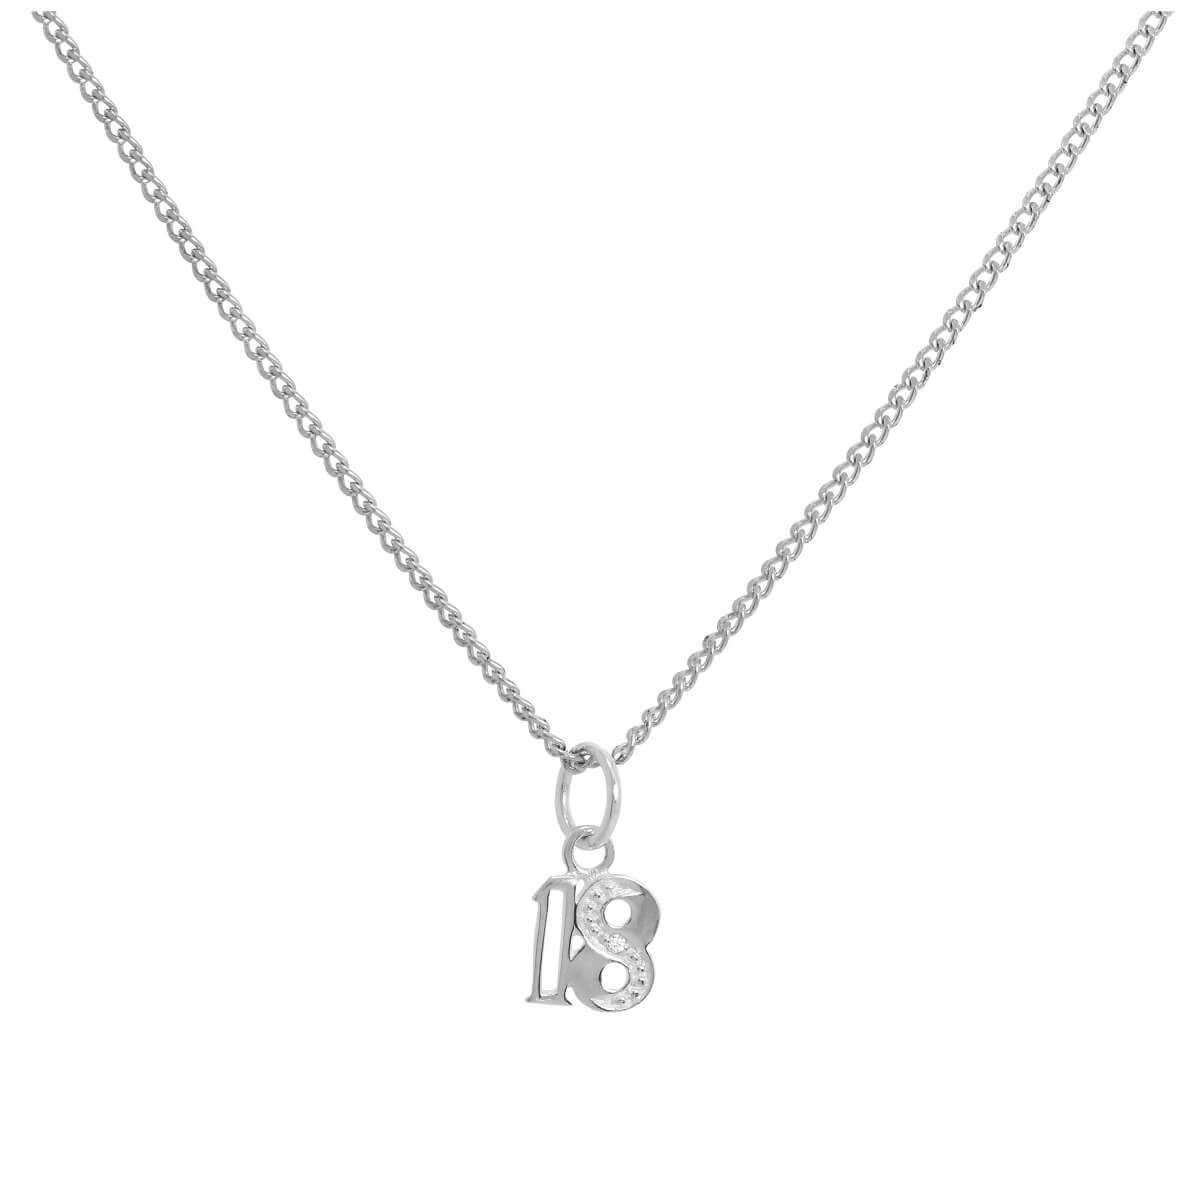 Sterling Silver & Clear CZ Crystal 18 Pendant Necklace 16 - 24 Inches